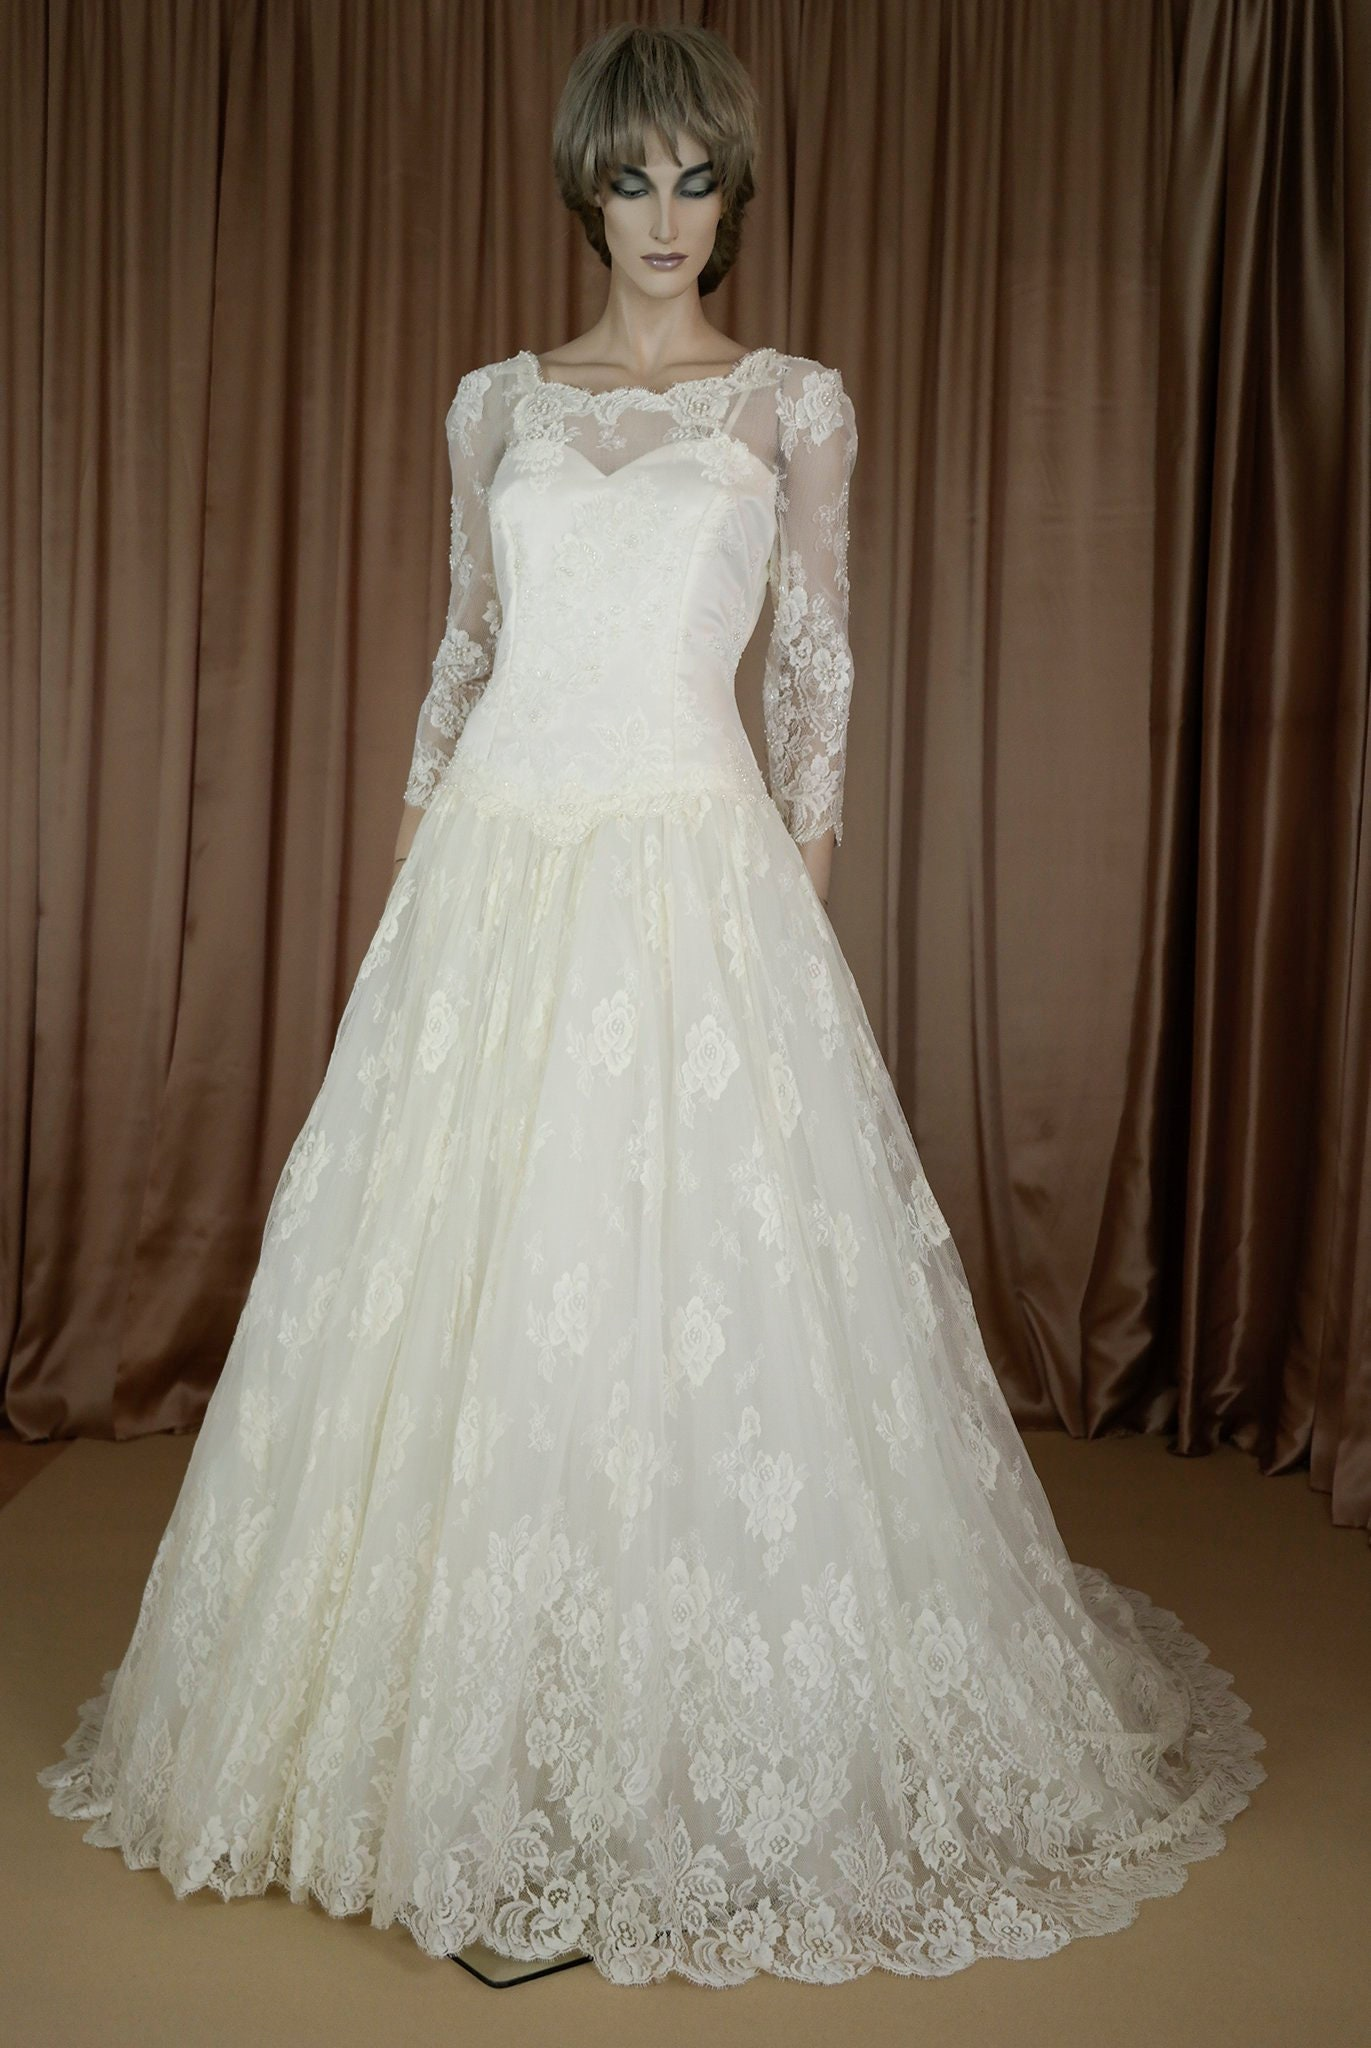 Vintage wedding Dress 20's Bridal gown from 1920s   Etsy